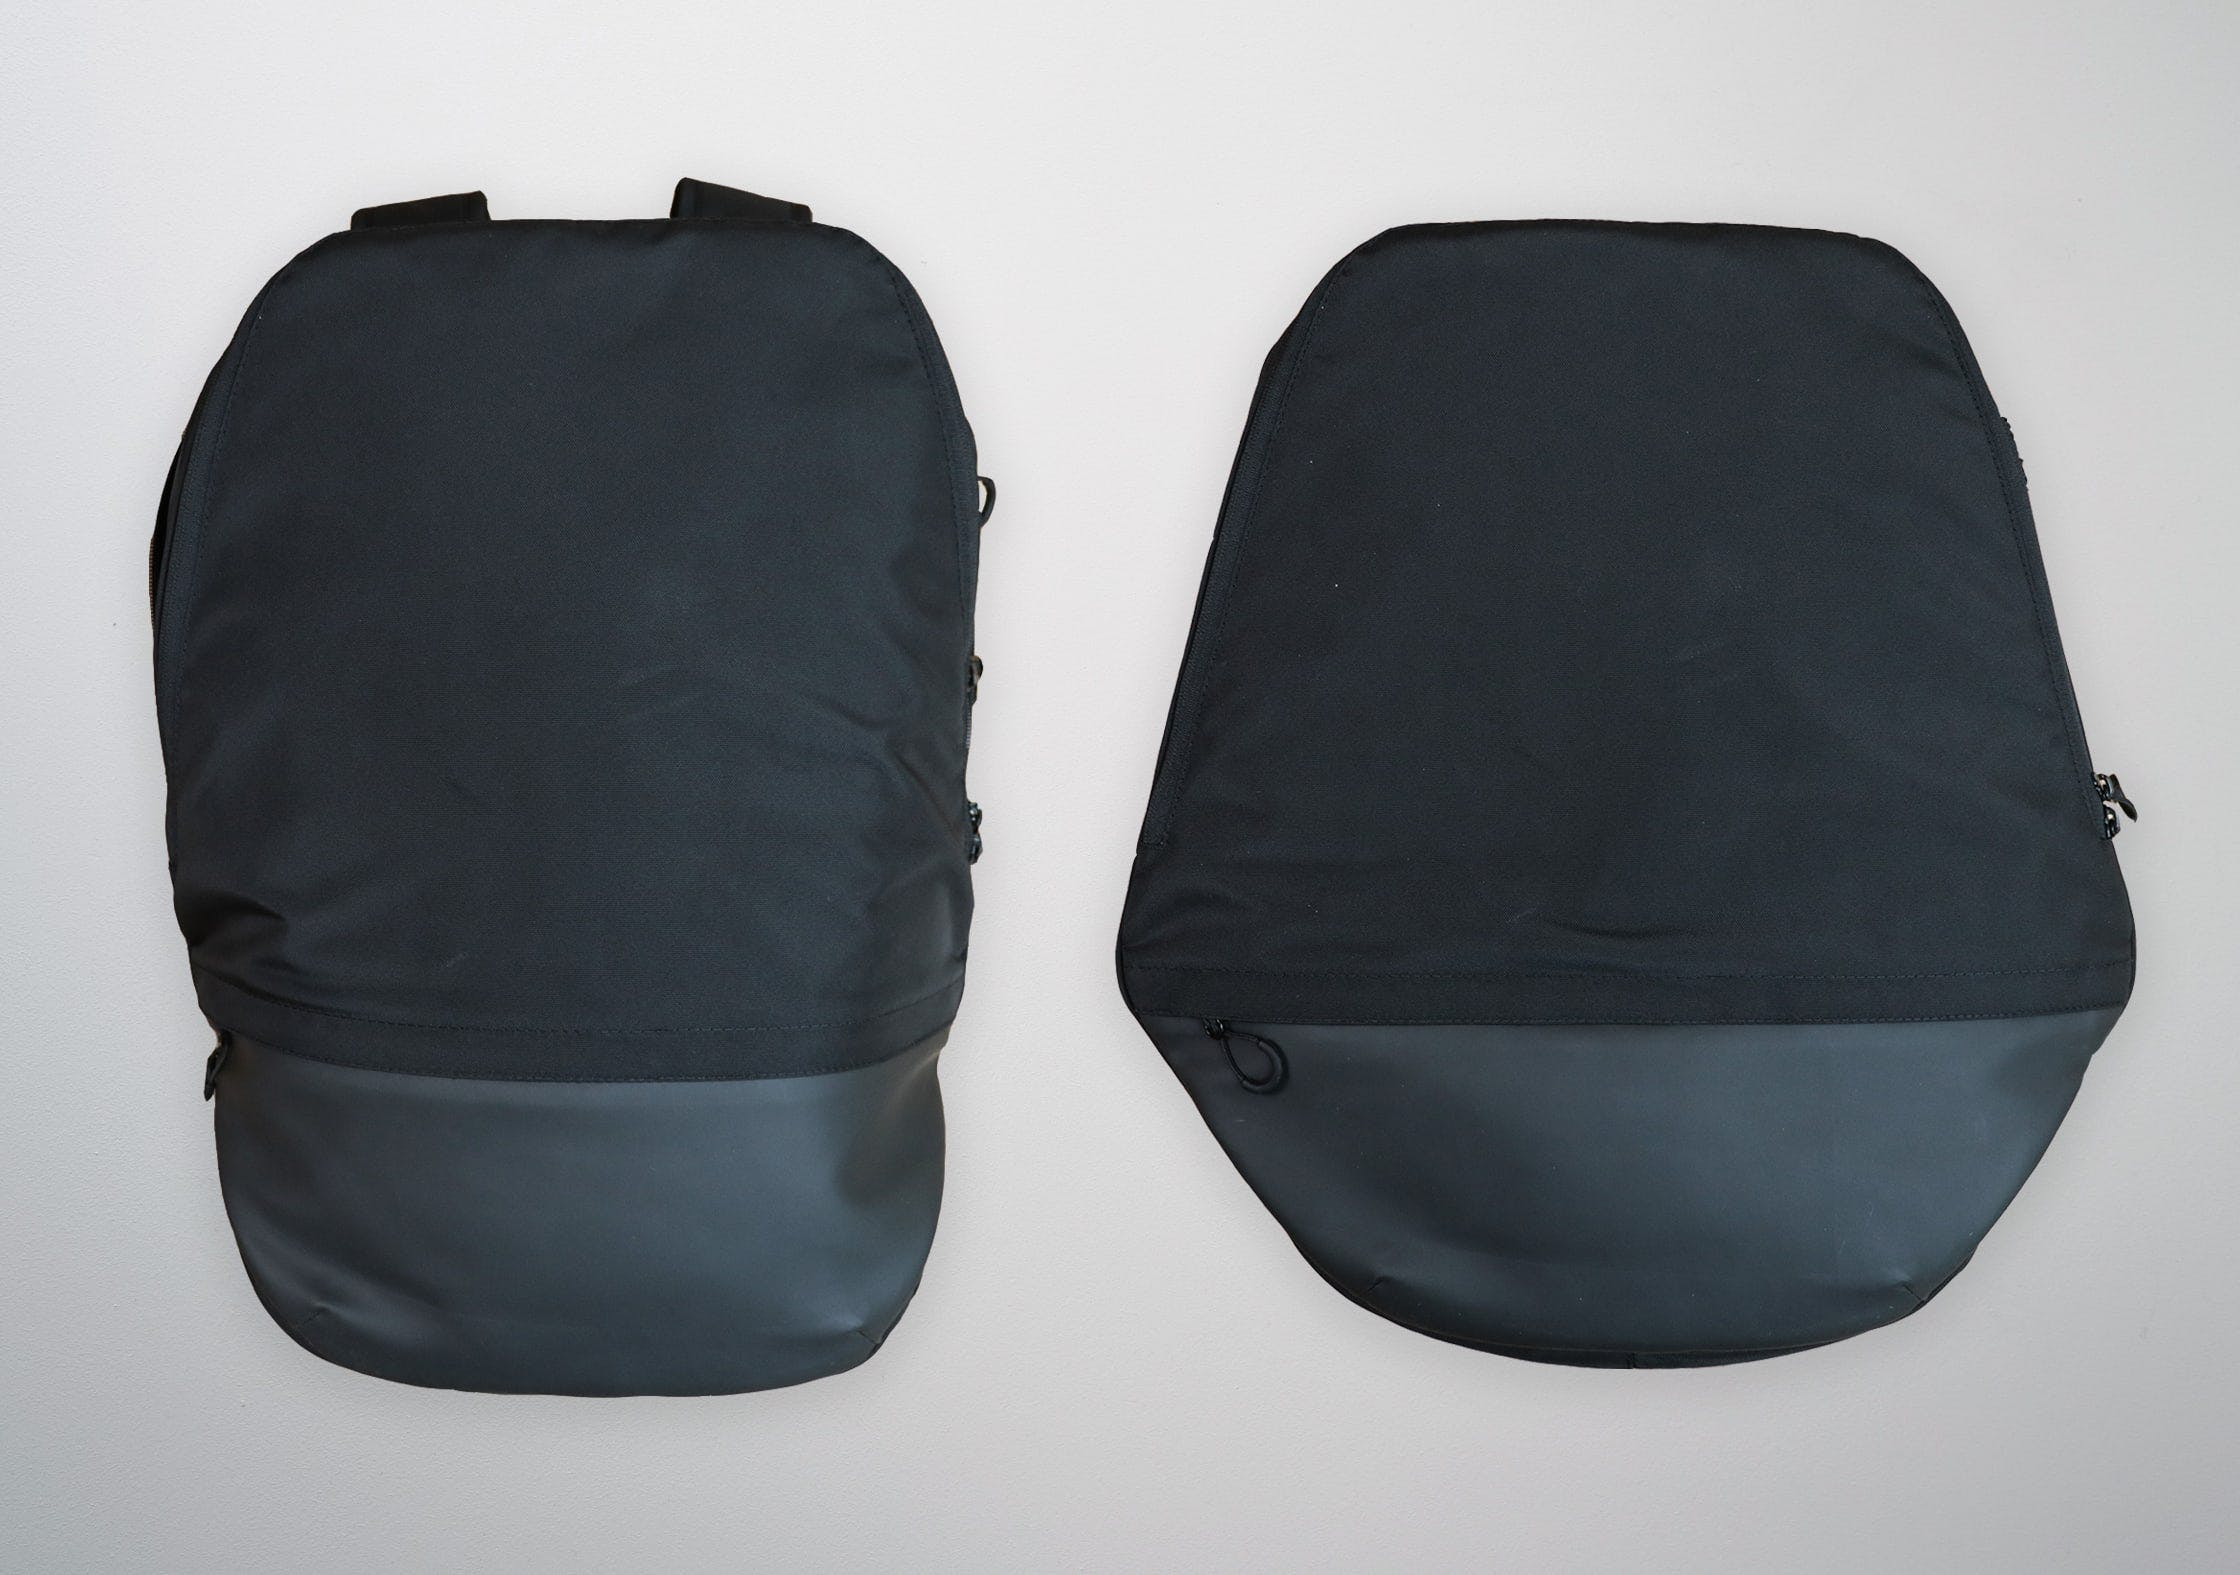 OPPOSETHIS Invisible Carry-On Full Vs Half-Empty Daypack Mode